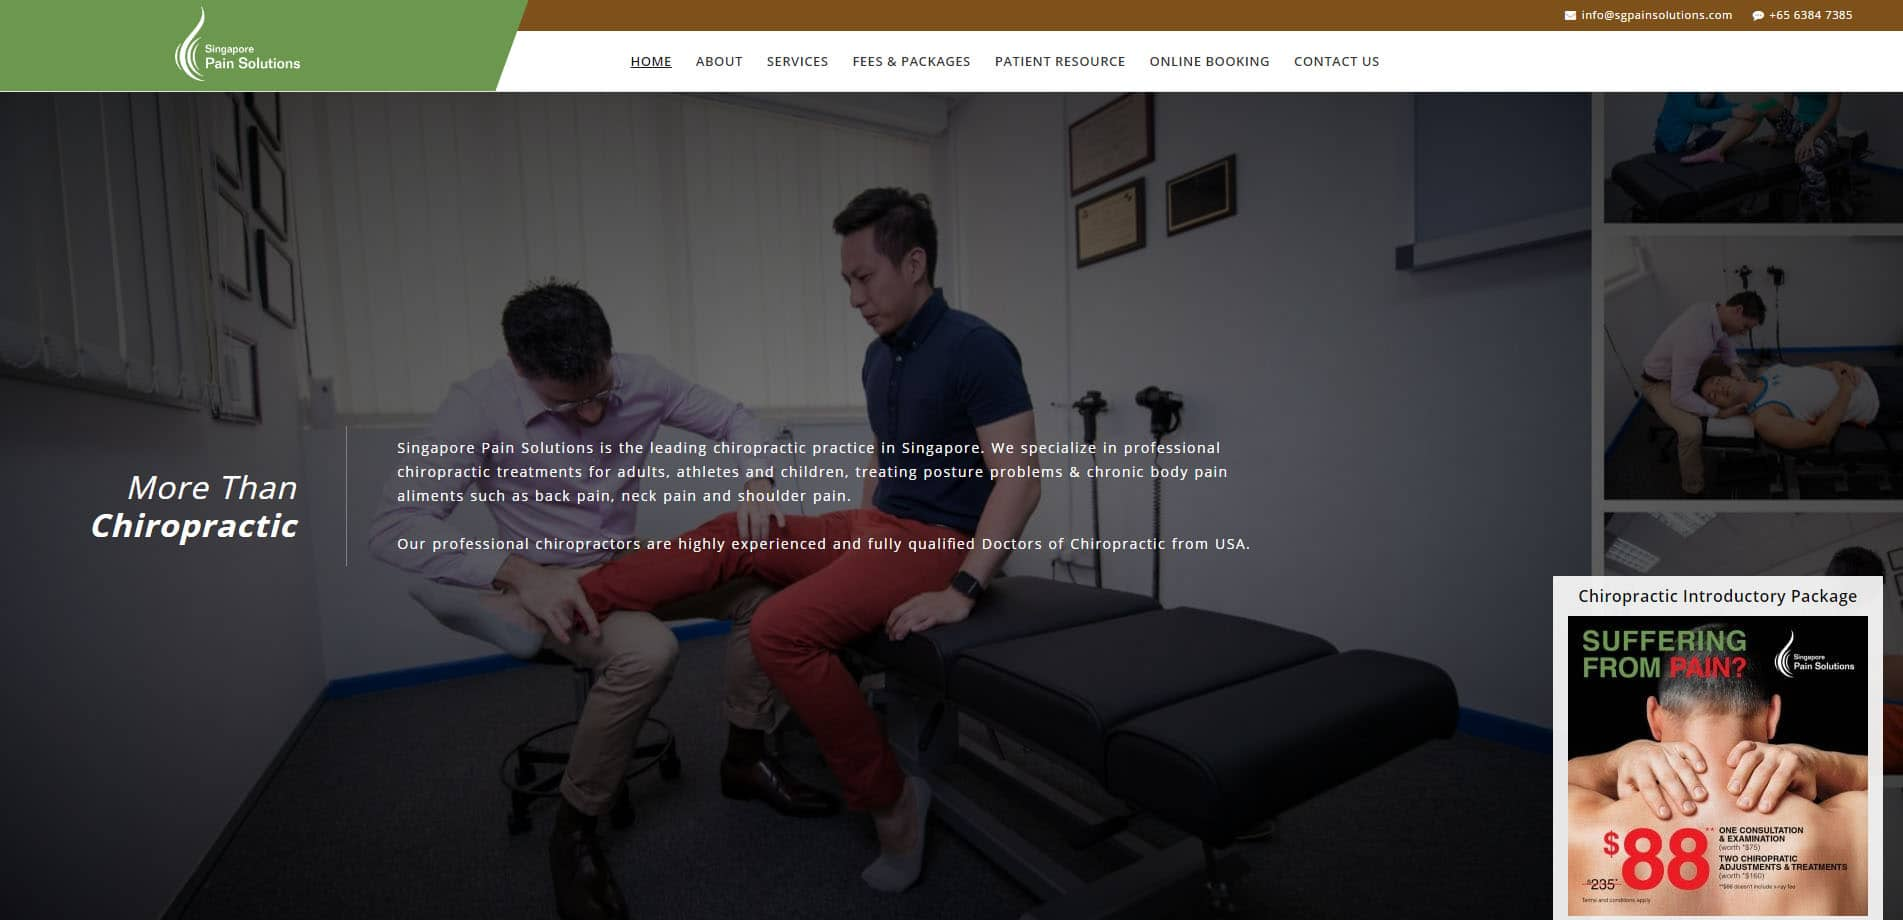 Chiropractors-Singapore-Singapore-Pain-Solutions Projects Showcase